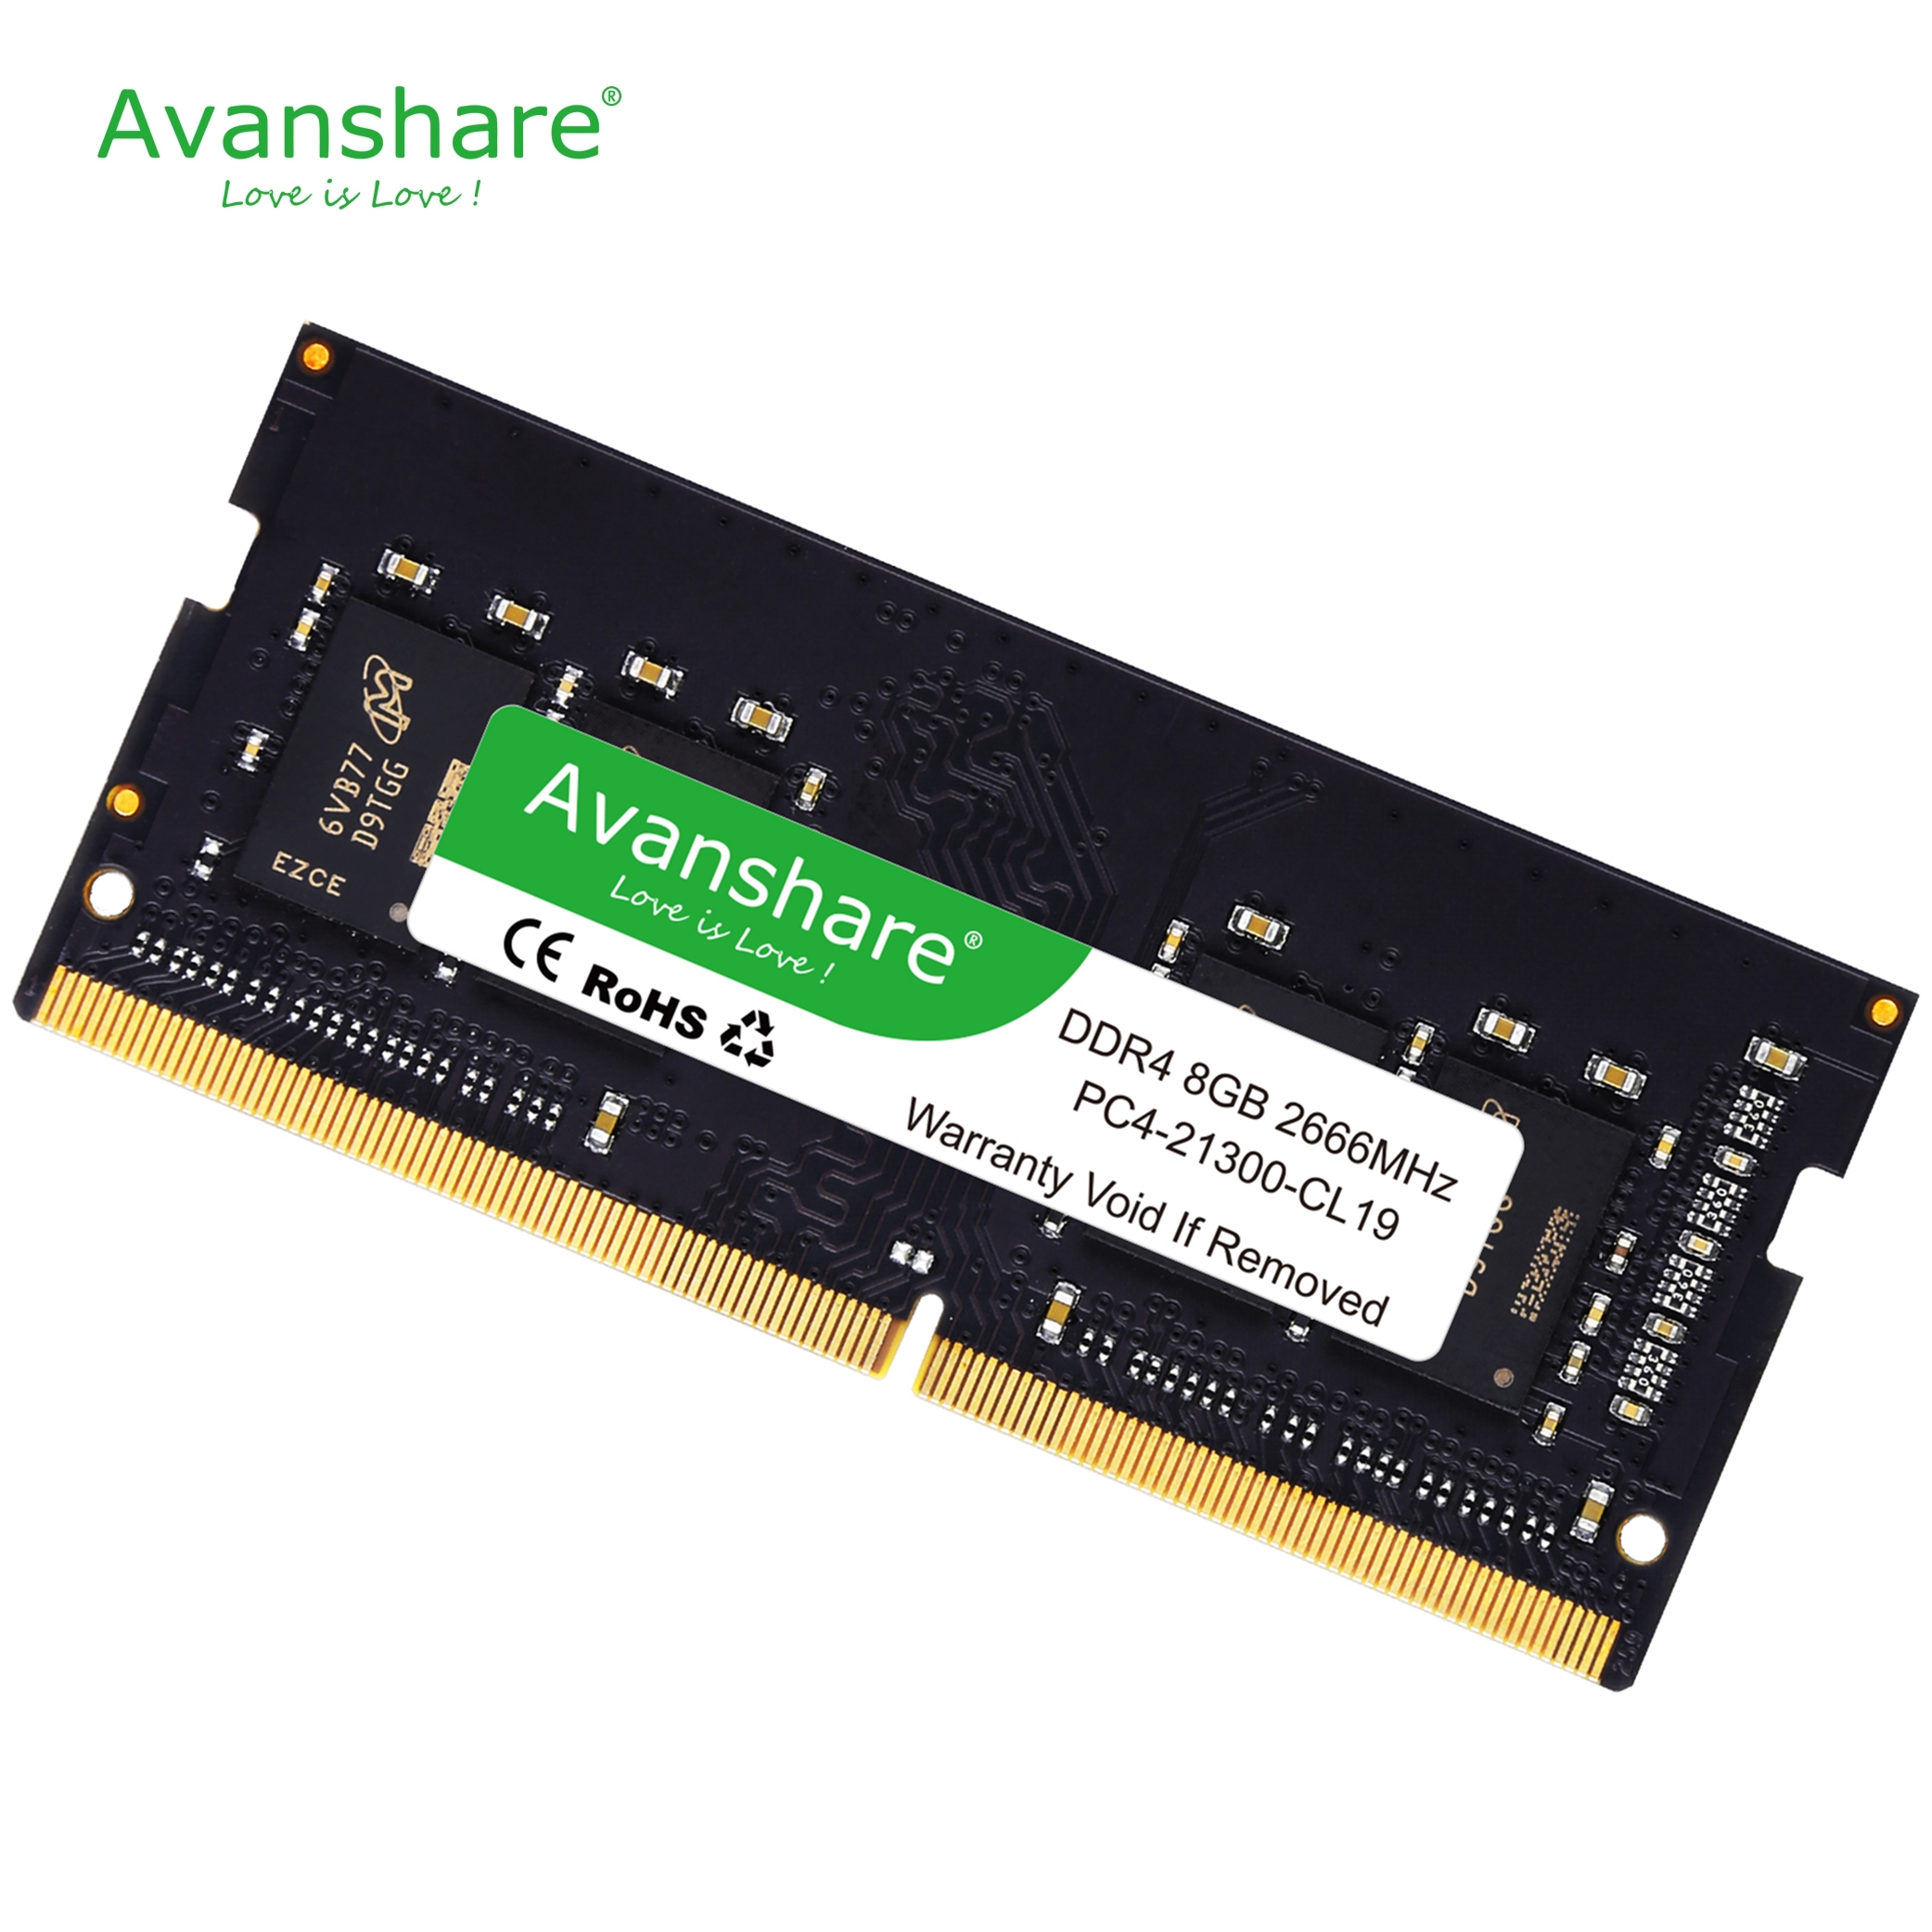 Avanshare ram <font><b>ddr4</b></font> 4GB <font><b>8GB</b></font> 2666MHz 2400MHz sodimm laptop memory compatible <font><b>memoria</b></font> <font><b>ddr4</b></font> <font><b>notebook</b></font> NEW image